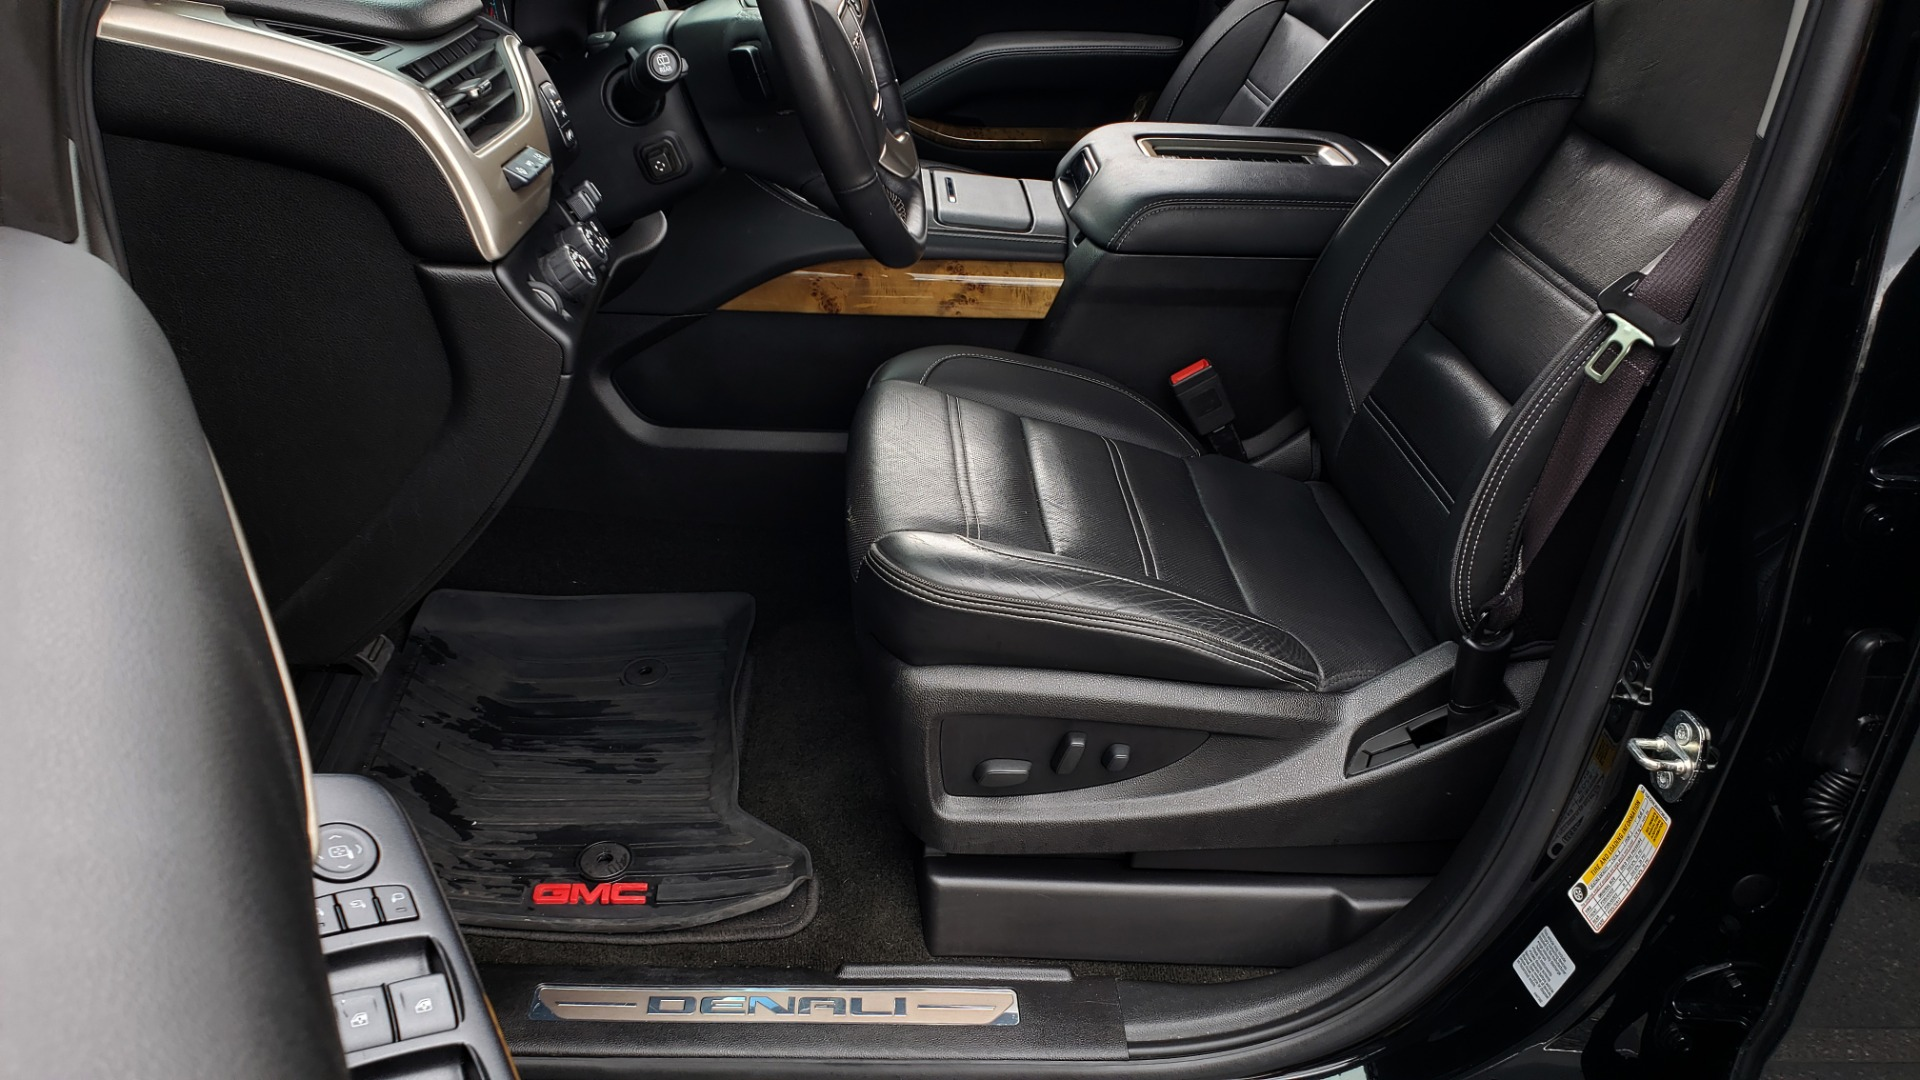 Used 2017 GMC YUKON XL DENALI 4WD / NAV / SUNROOF / ENT / 3-ROWS / BOSE / REARVIEW for sale $48,695 at Formula Imports in Charlotte NC 28227 38